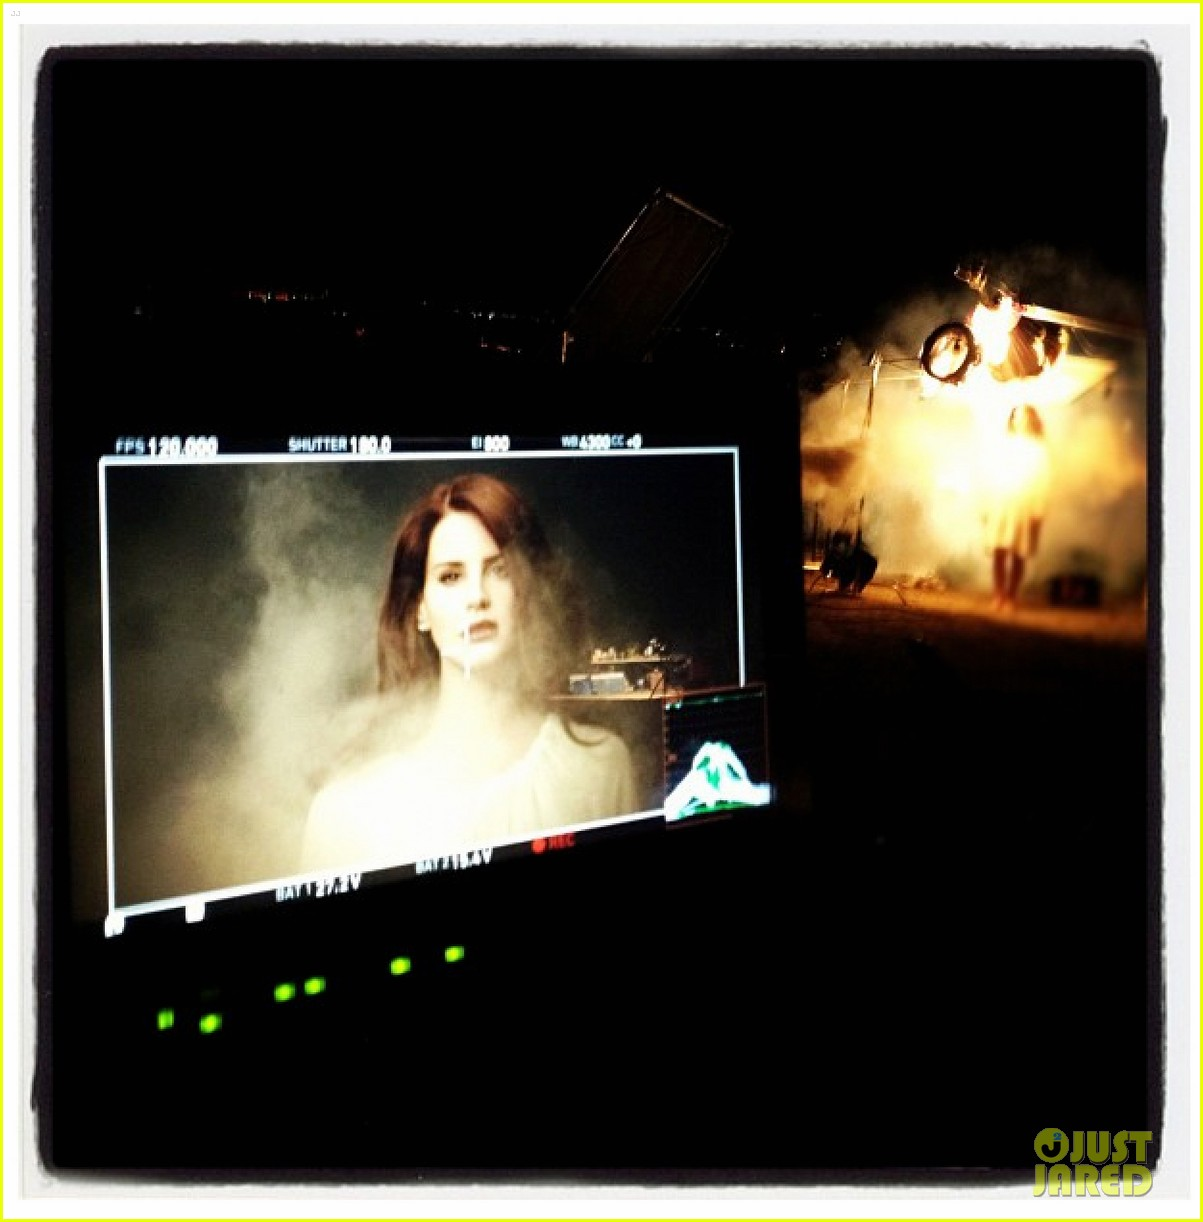 Videoclip >> Summertime Sadness Lana-del-rey-summertime-sadness-preview-06